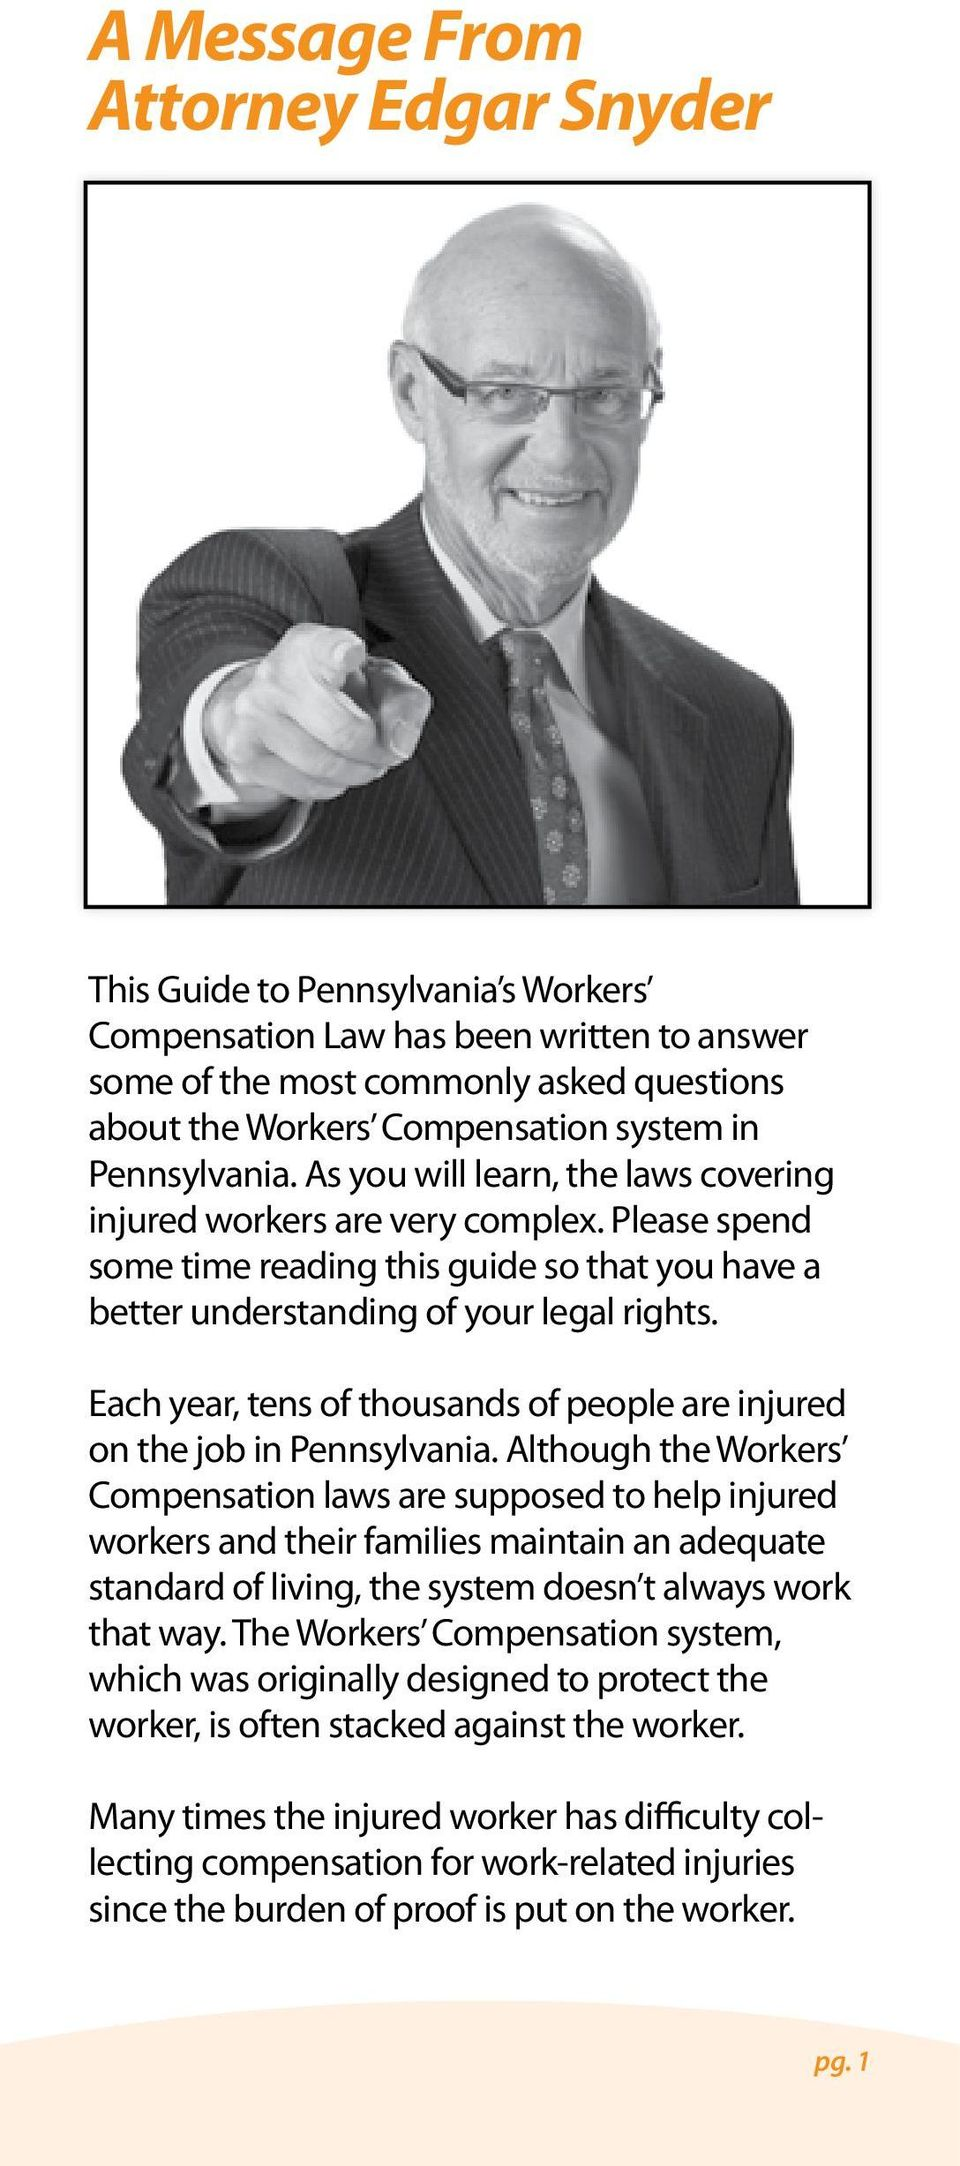 Each year, tens of thousands of people are injured on the job in Pennsylvania.